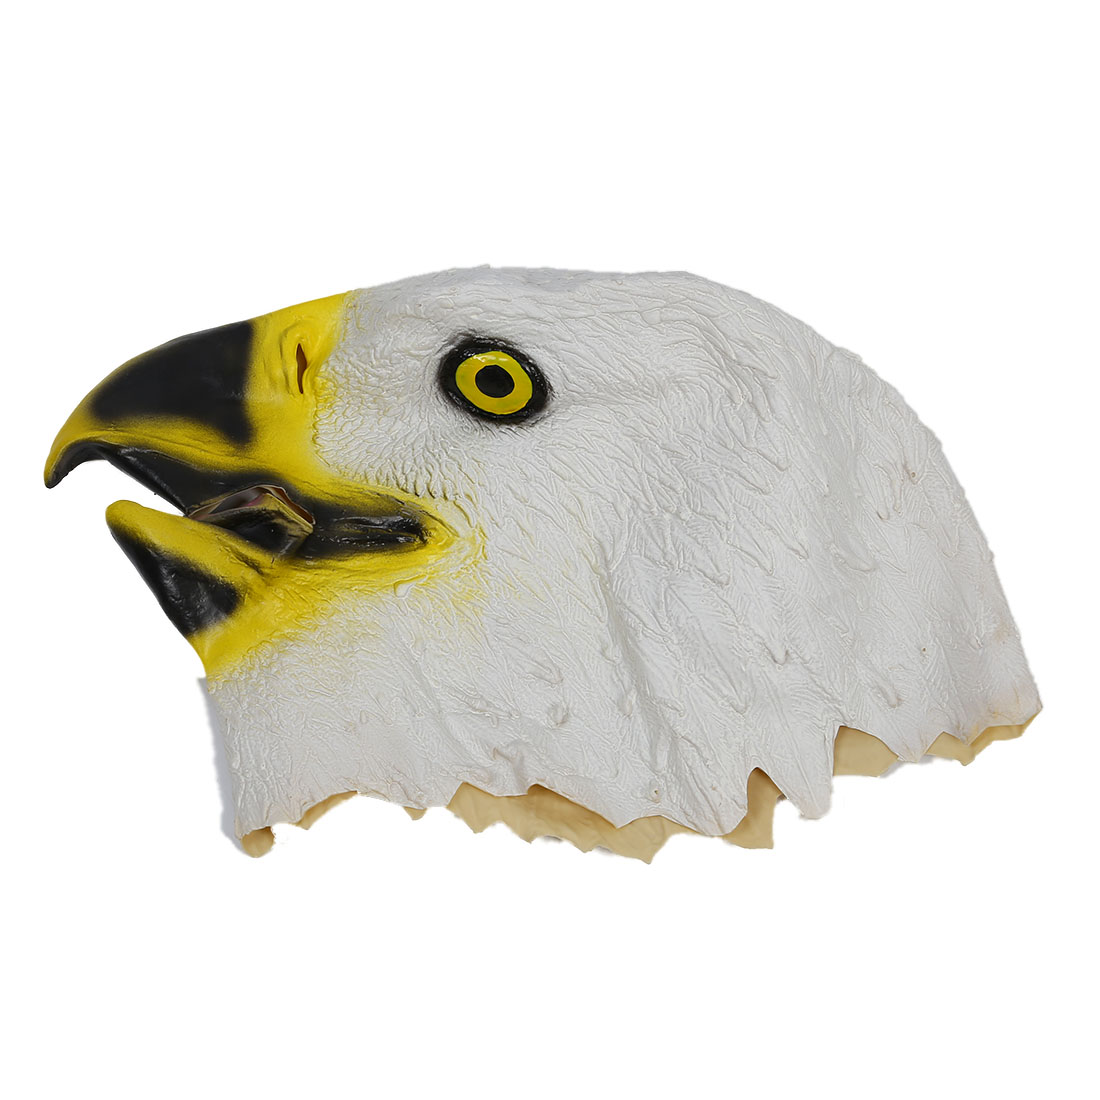 New Creepy eagle head Mask for Halloween kids toy childrens gifts